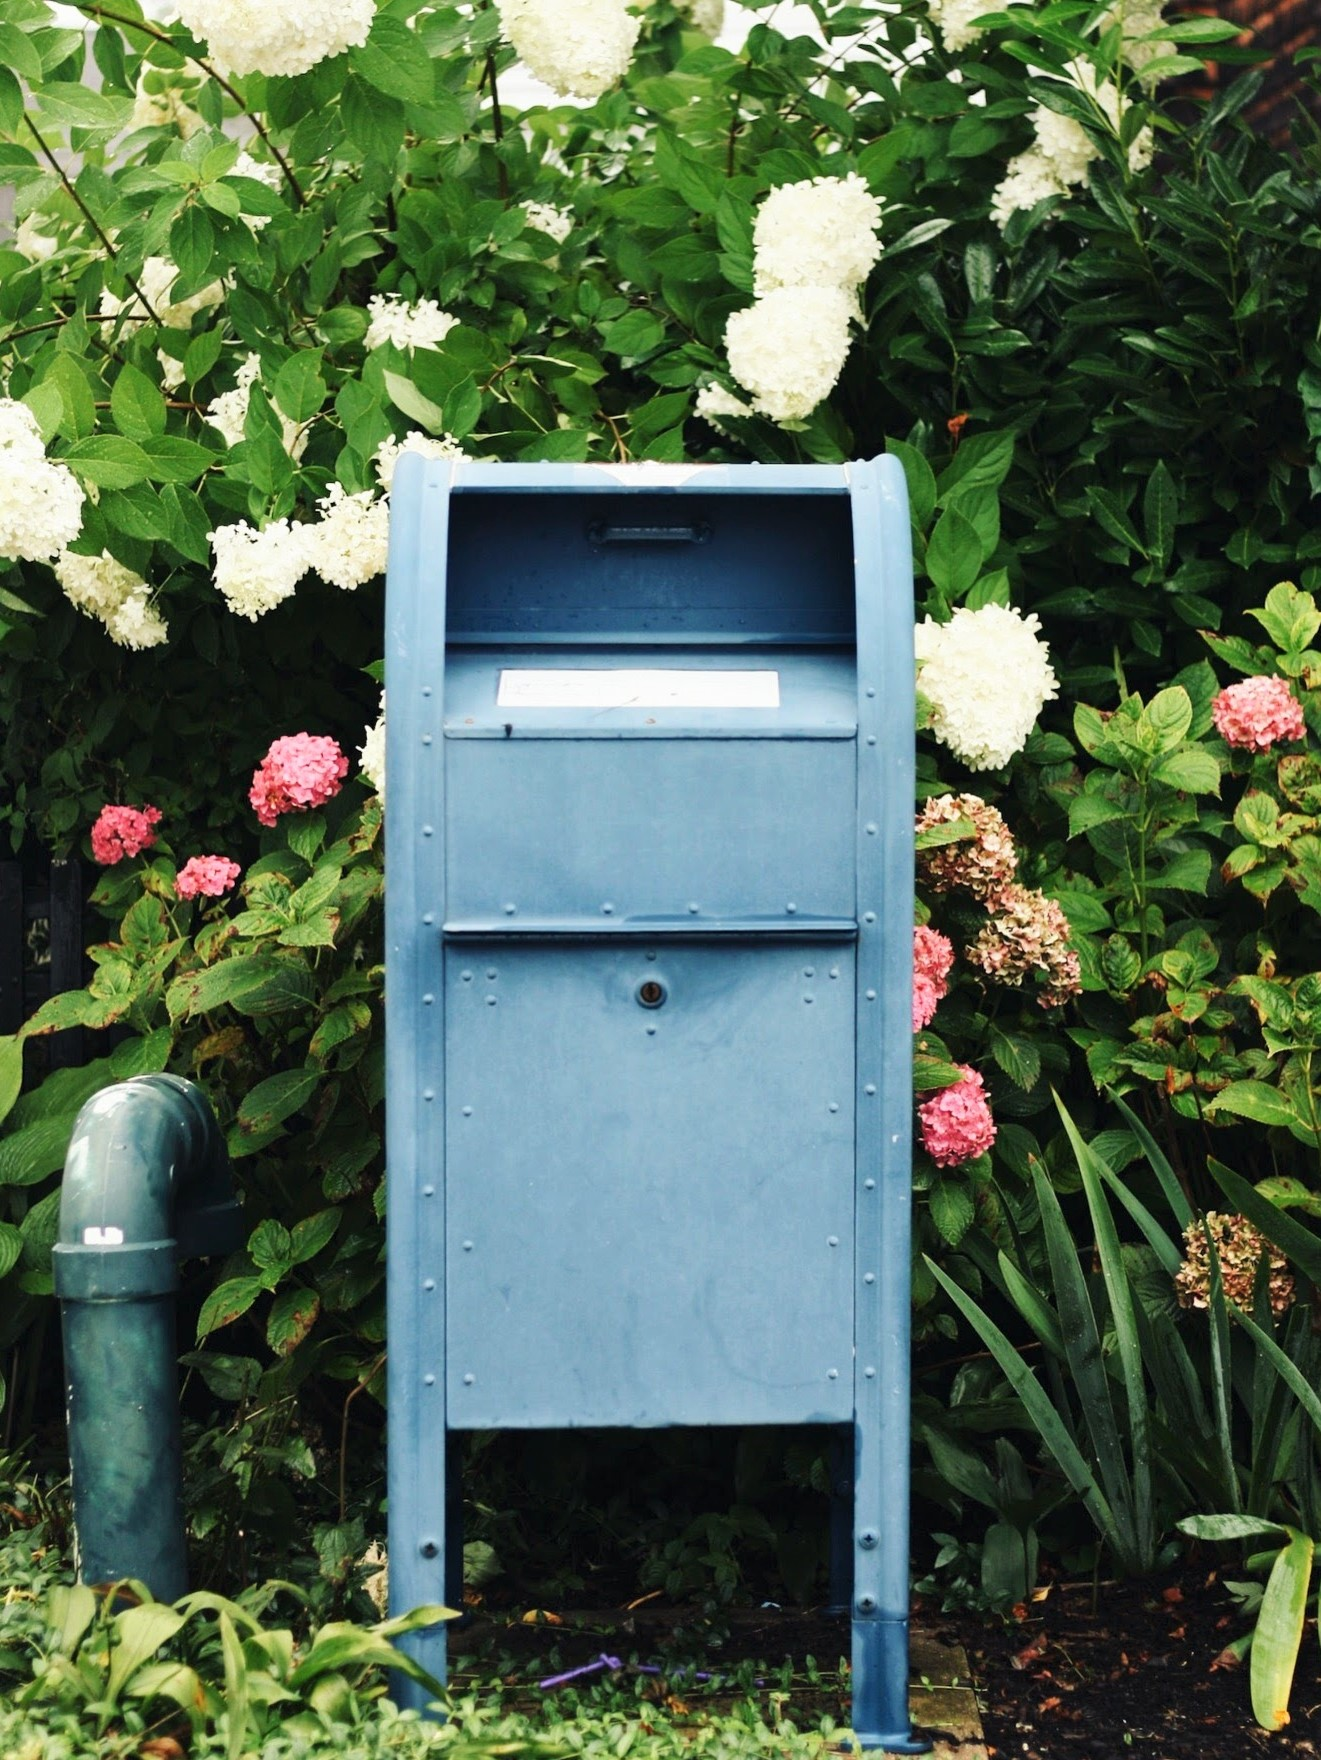 ptown mailbox and flowers